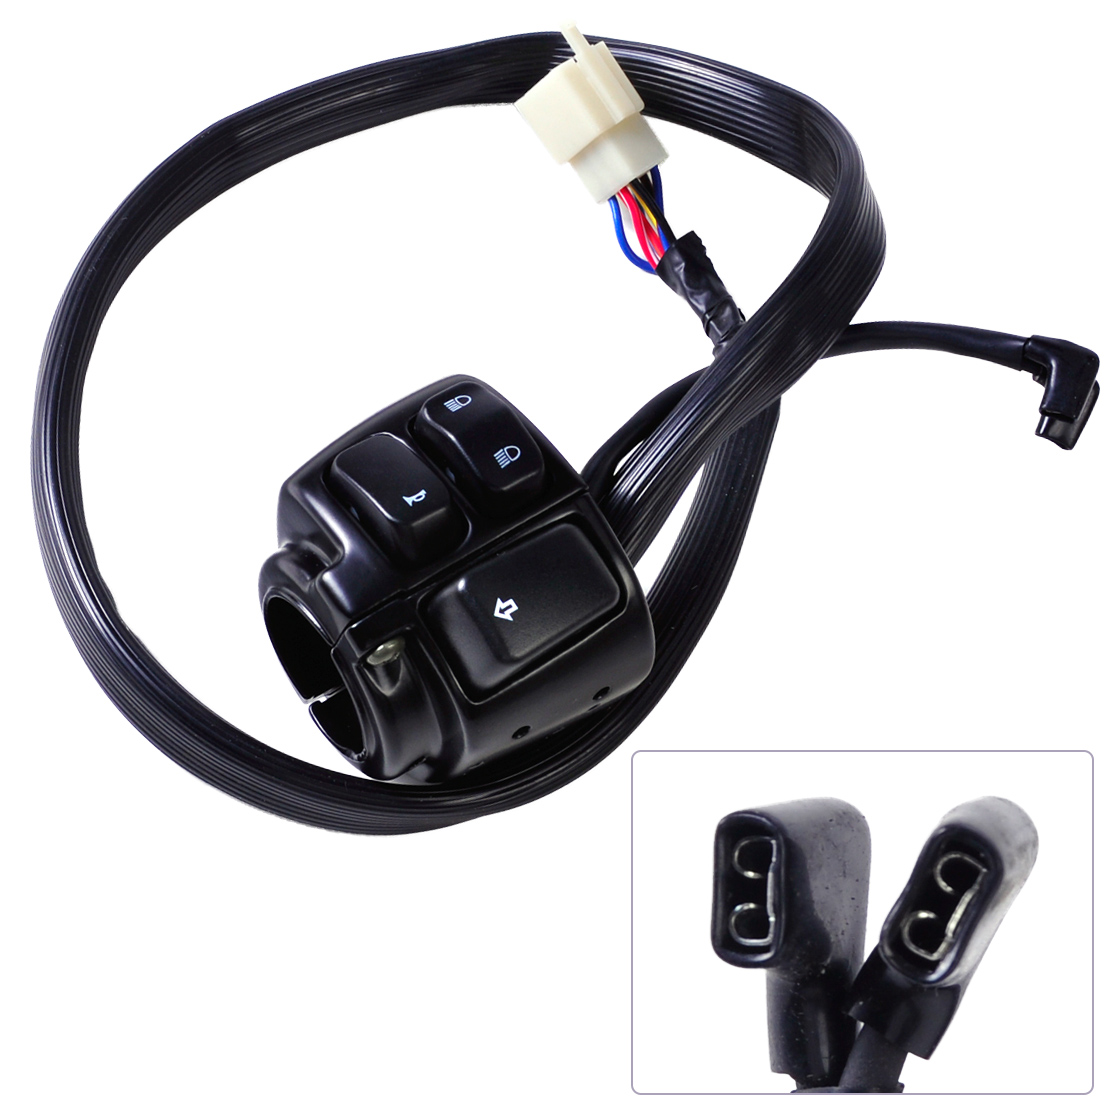 DWCX Motorcycle 1 Handlebar Horn Hi/Lo Beam Left Turn Signals Switch Wire Harness for Harley Davidson Softail Sportster 1200